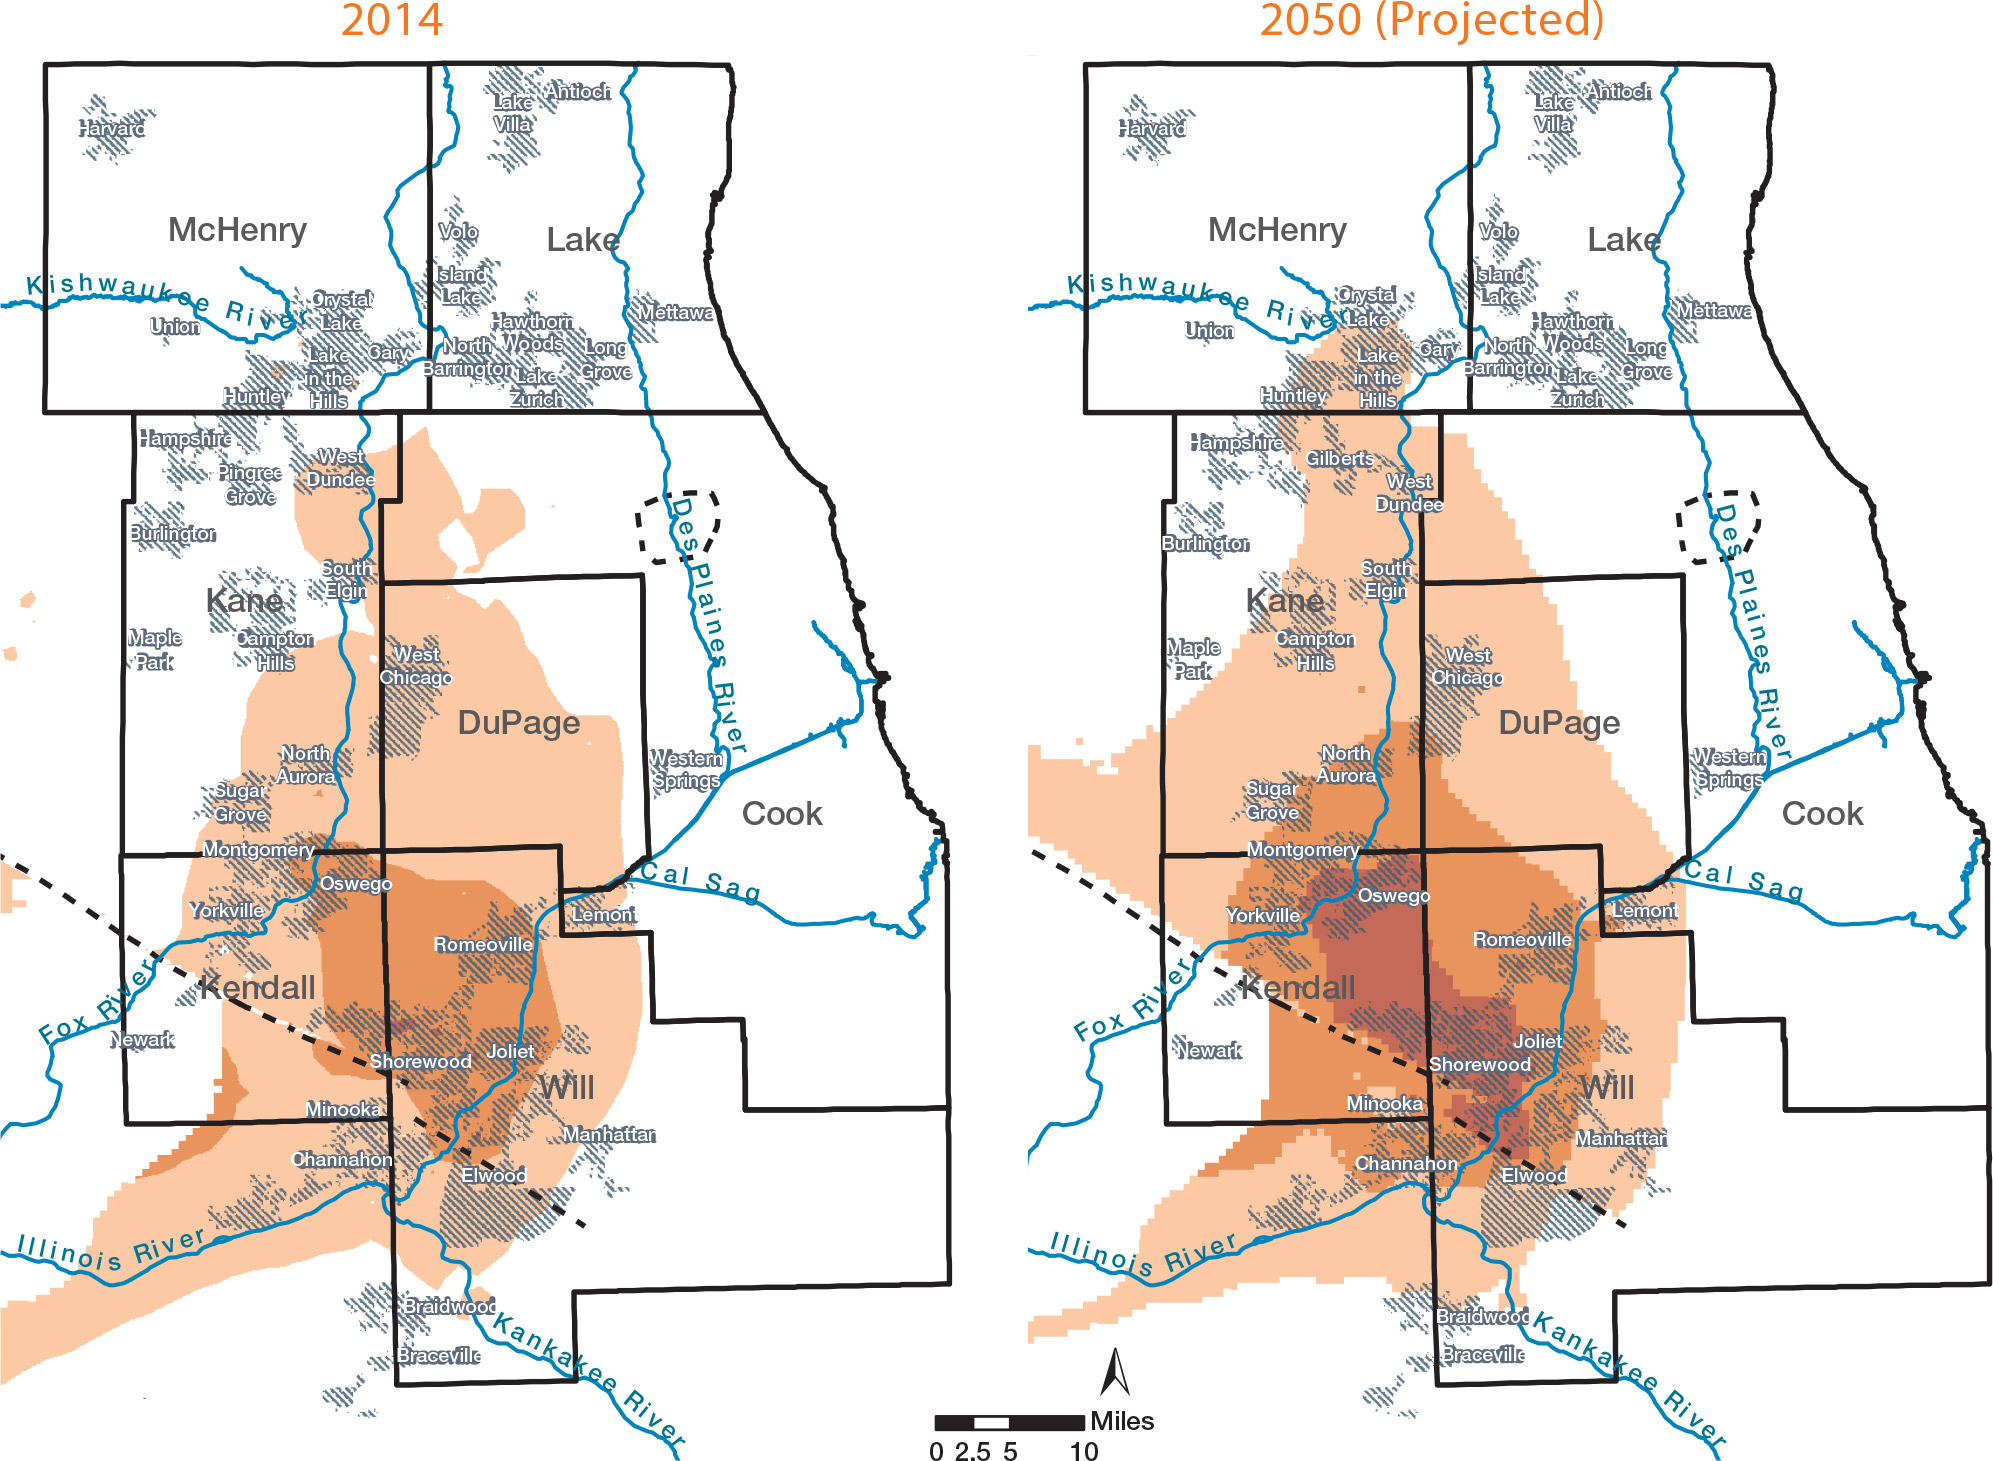 Maps of groundwater depletion in 2014 compared to 2050 (projected)